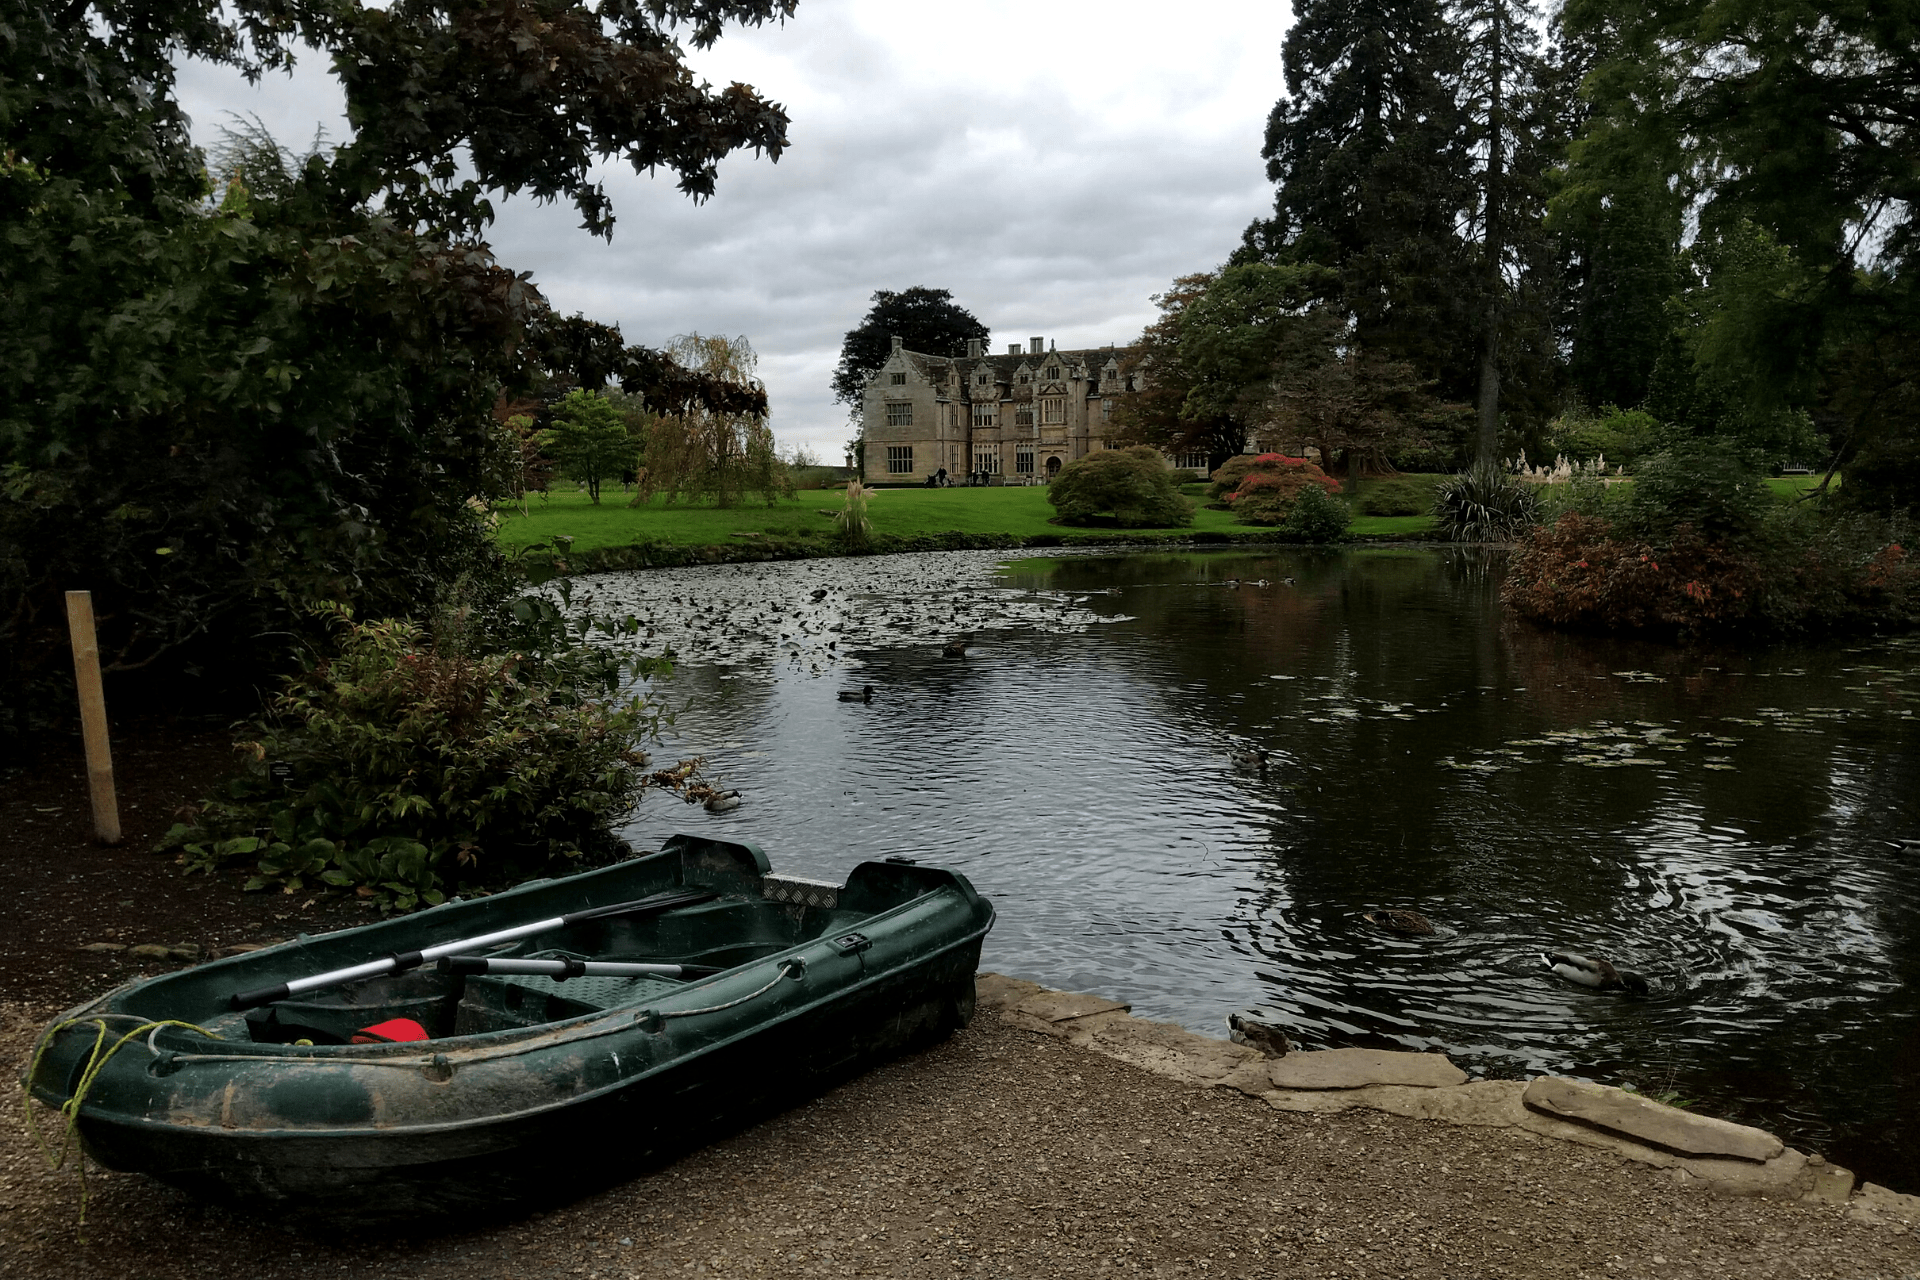 The view across the lake towards the Elizabethan manor at Wakehurst